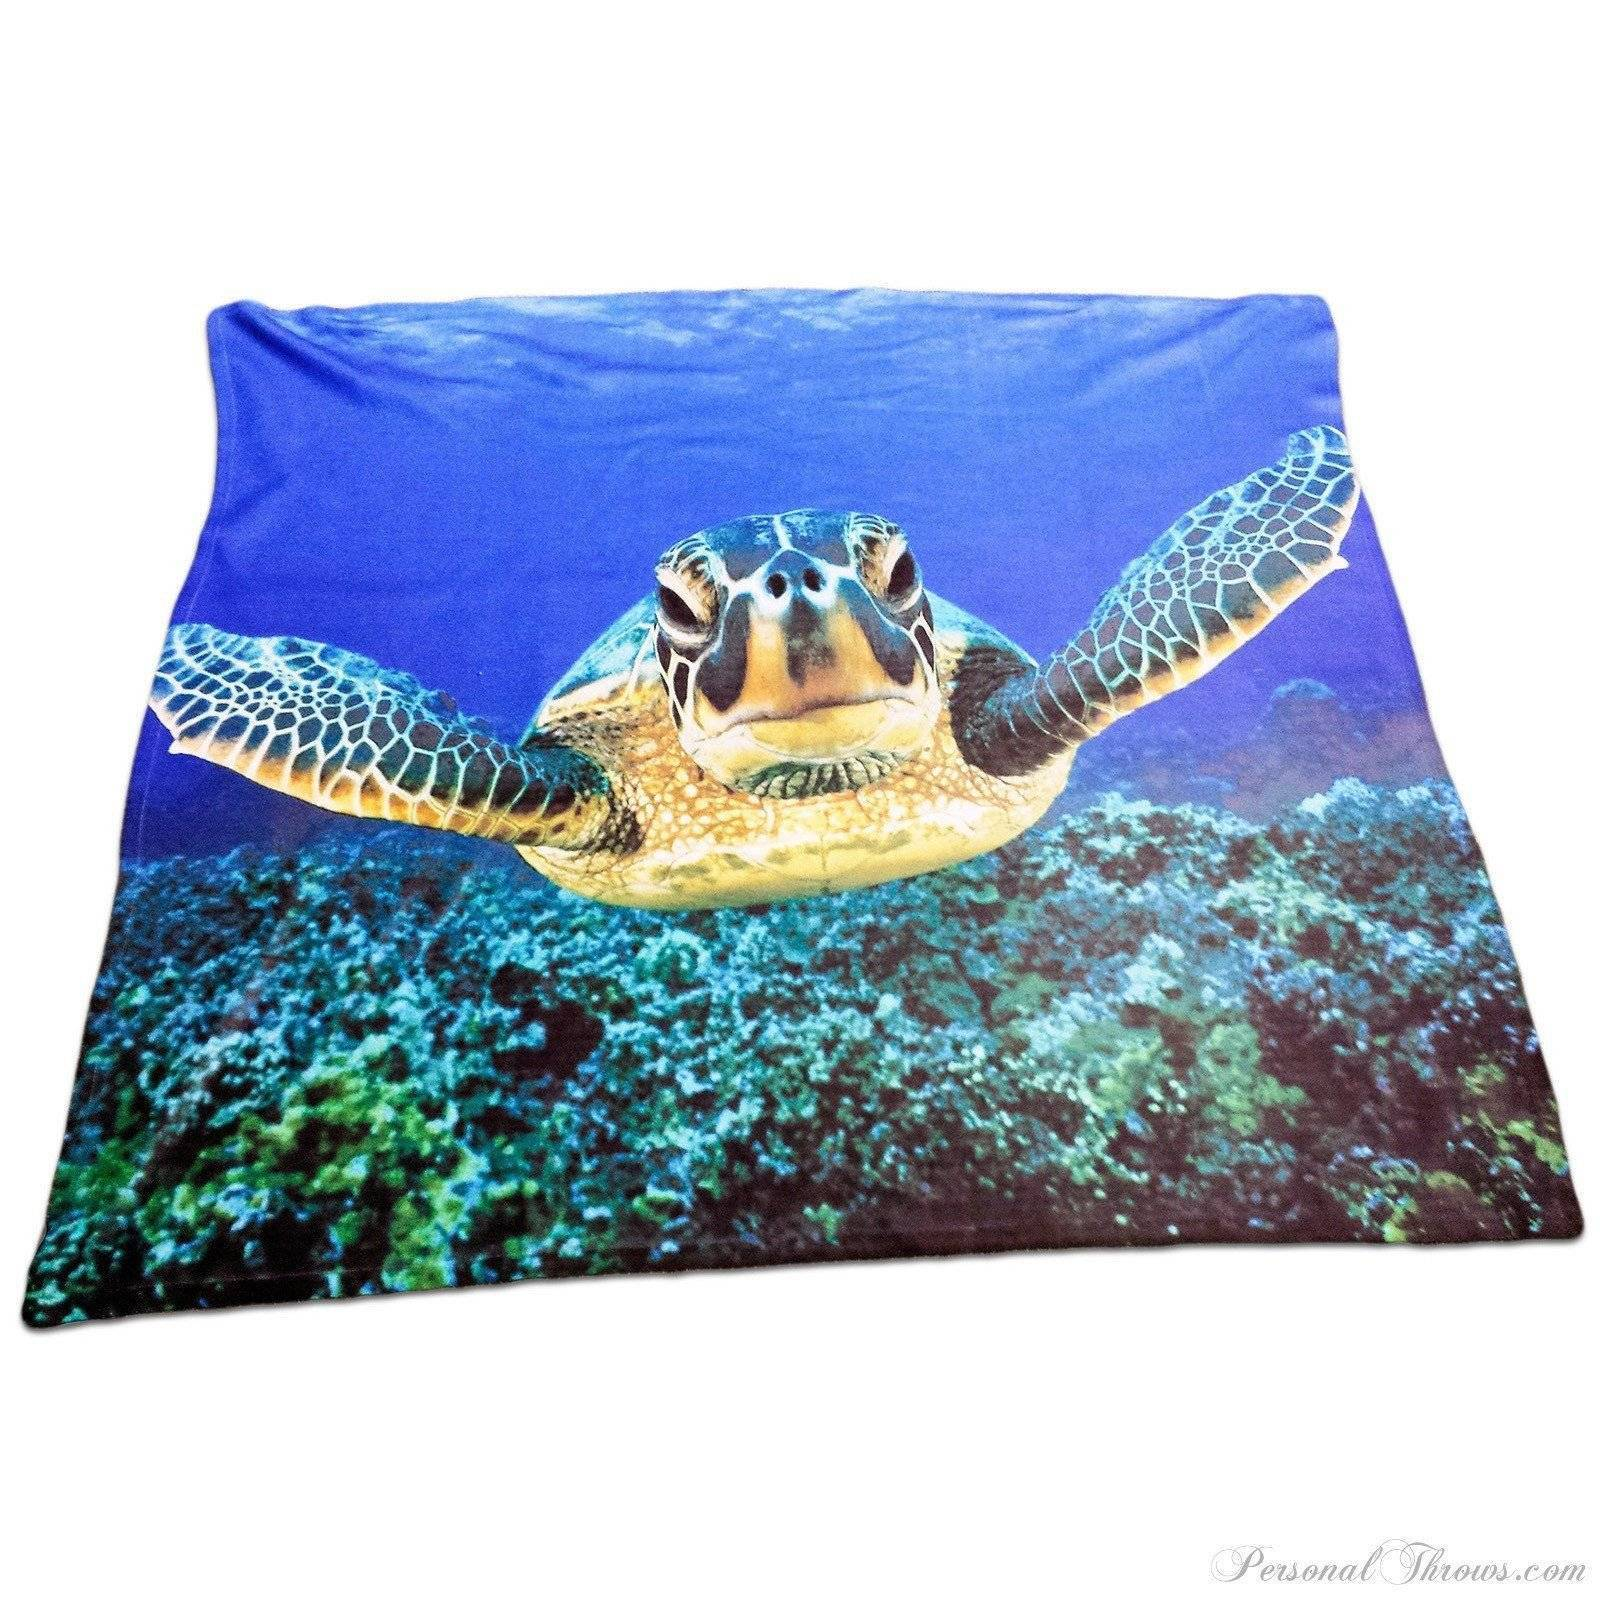 "Designer Gifts - Aquatic Sea Turtle 50"" X 60"" Polar Fleece Throw Blanket"